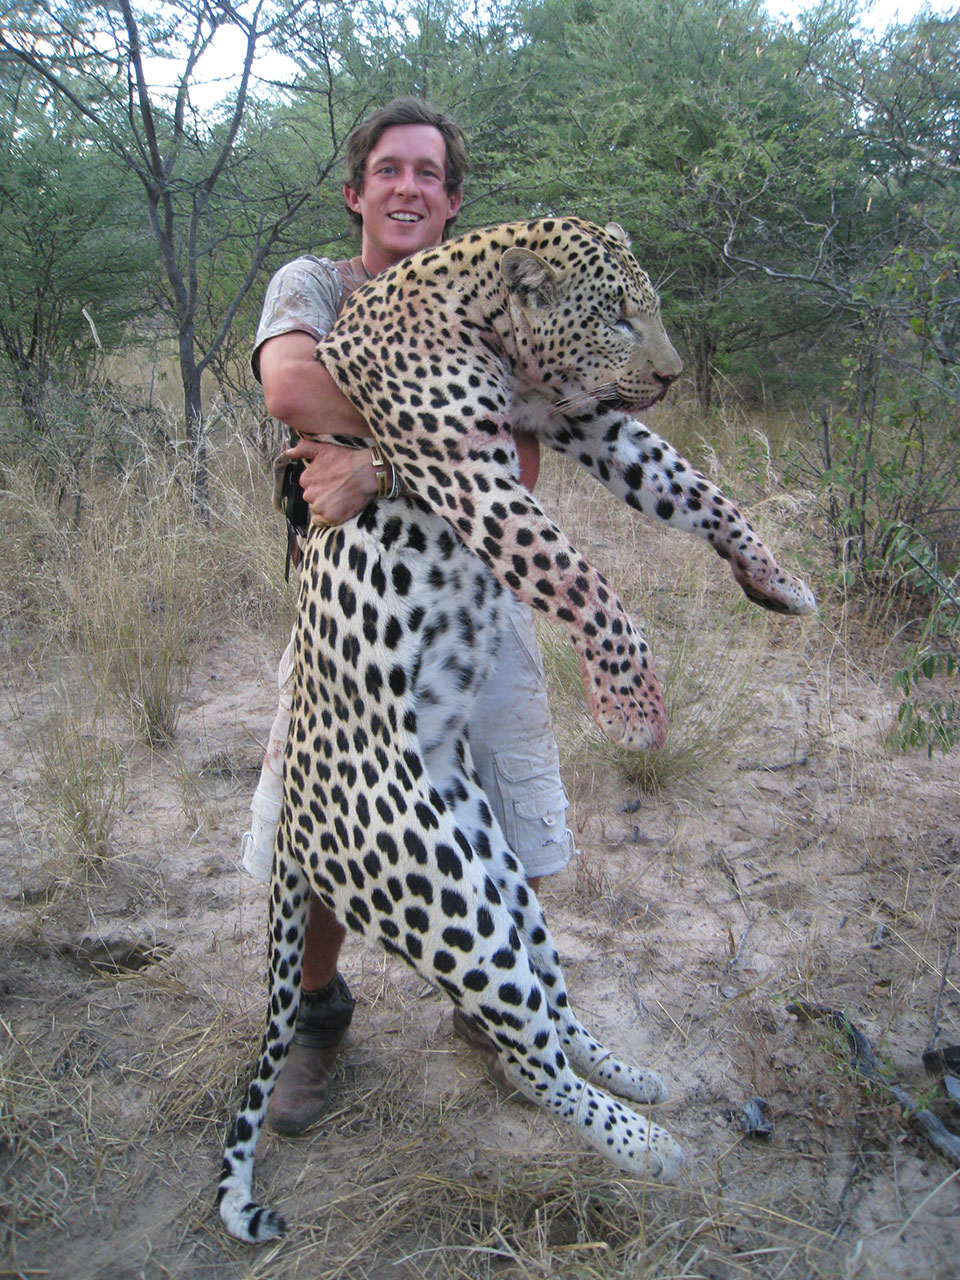 Monster-trophy-leopard-hunting-in-Namibia-Africa.jpg